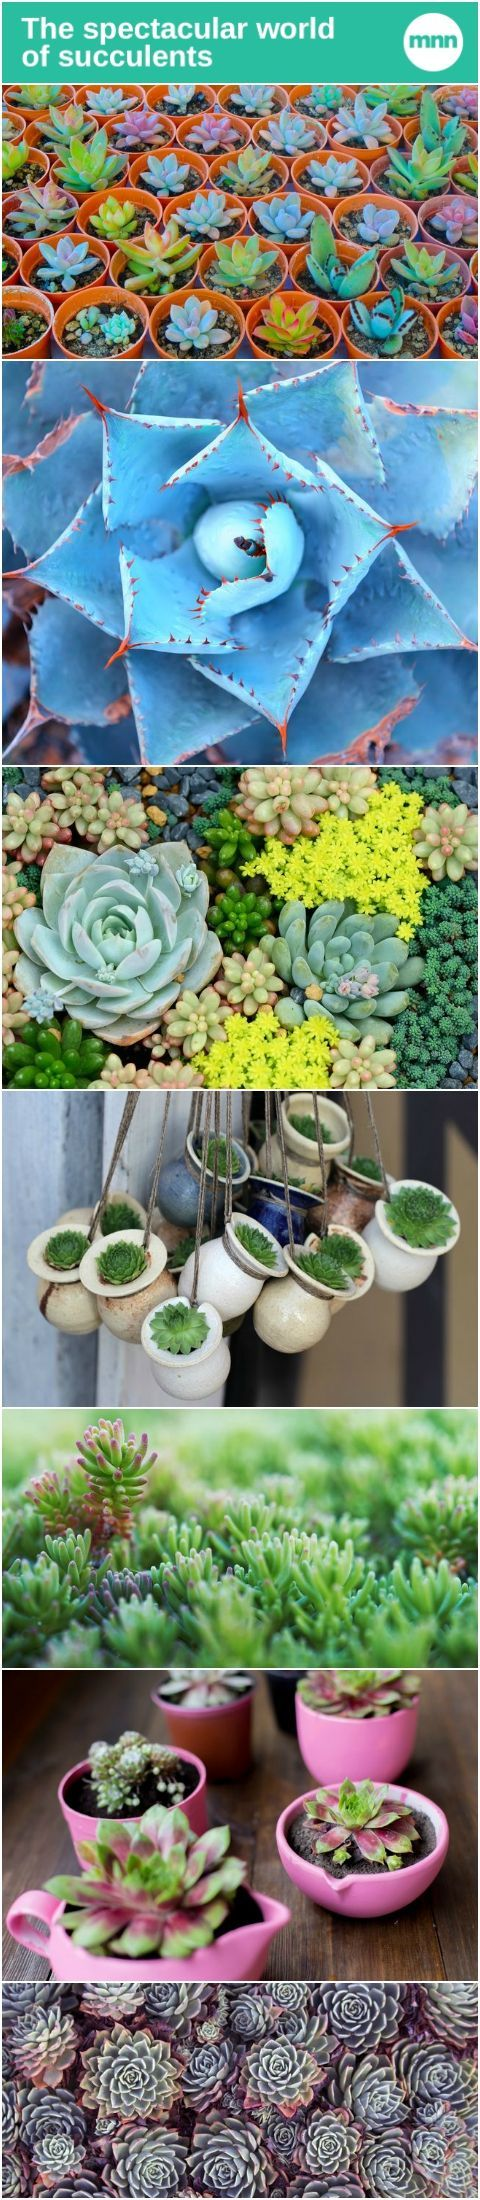 Succulents are often touted as some of the easiest plants to care for, but that's not the only reason they're so popular!